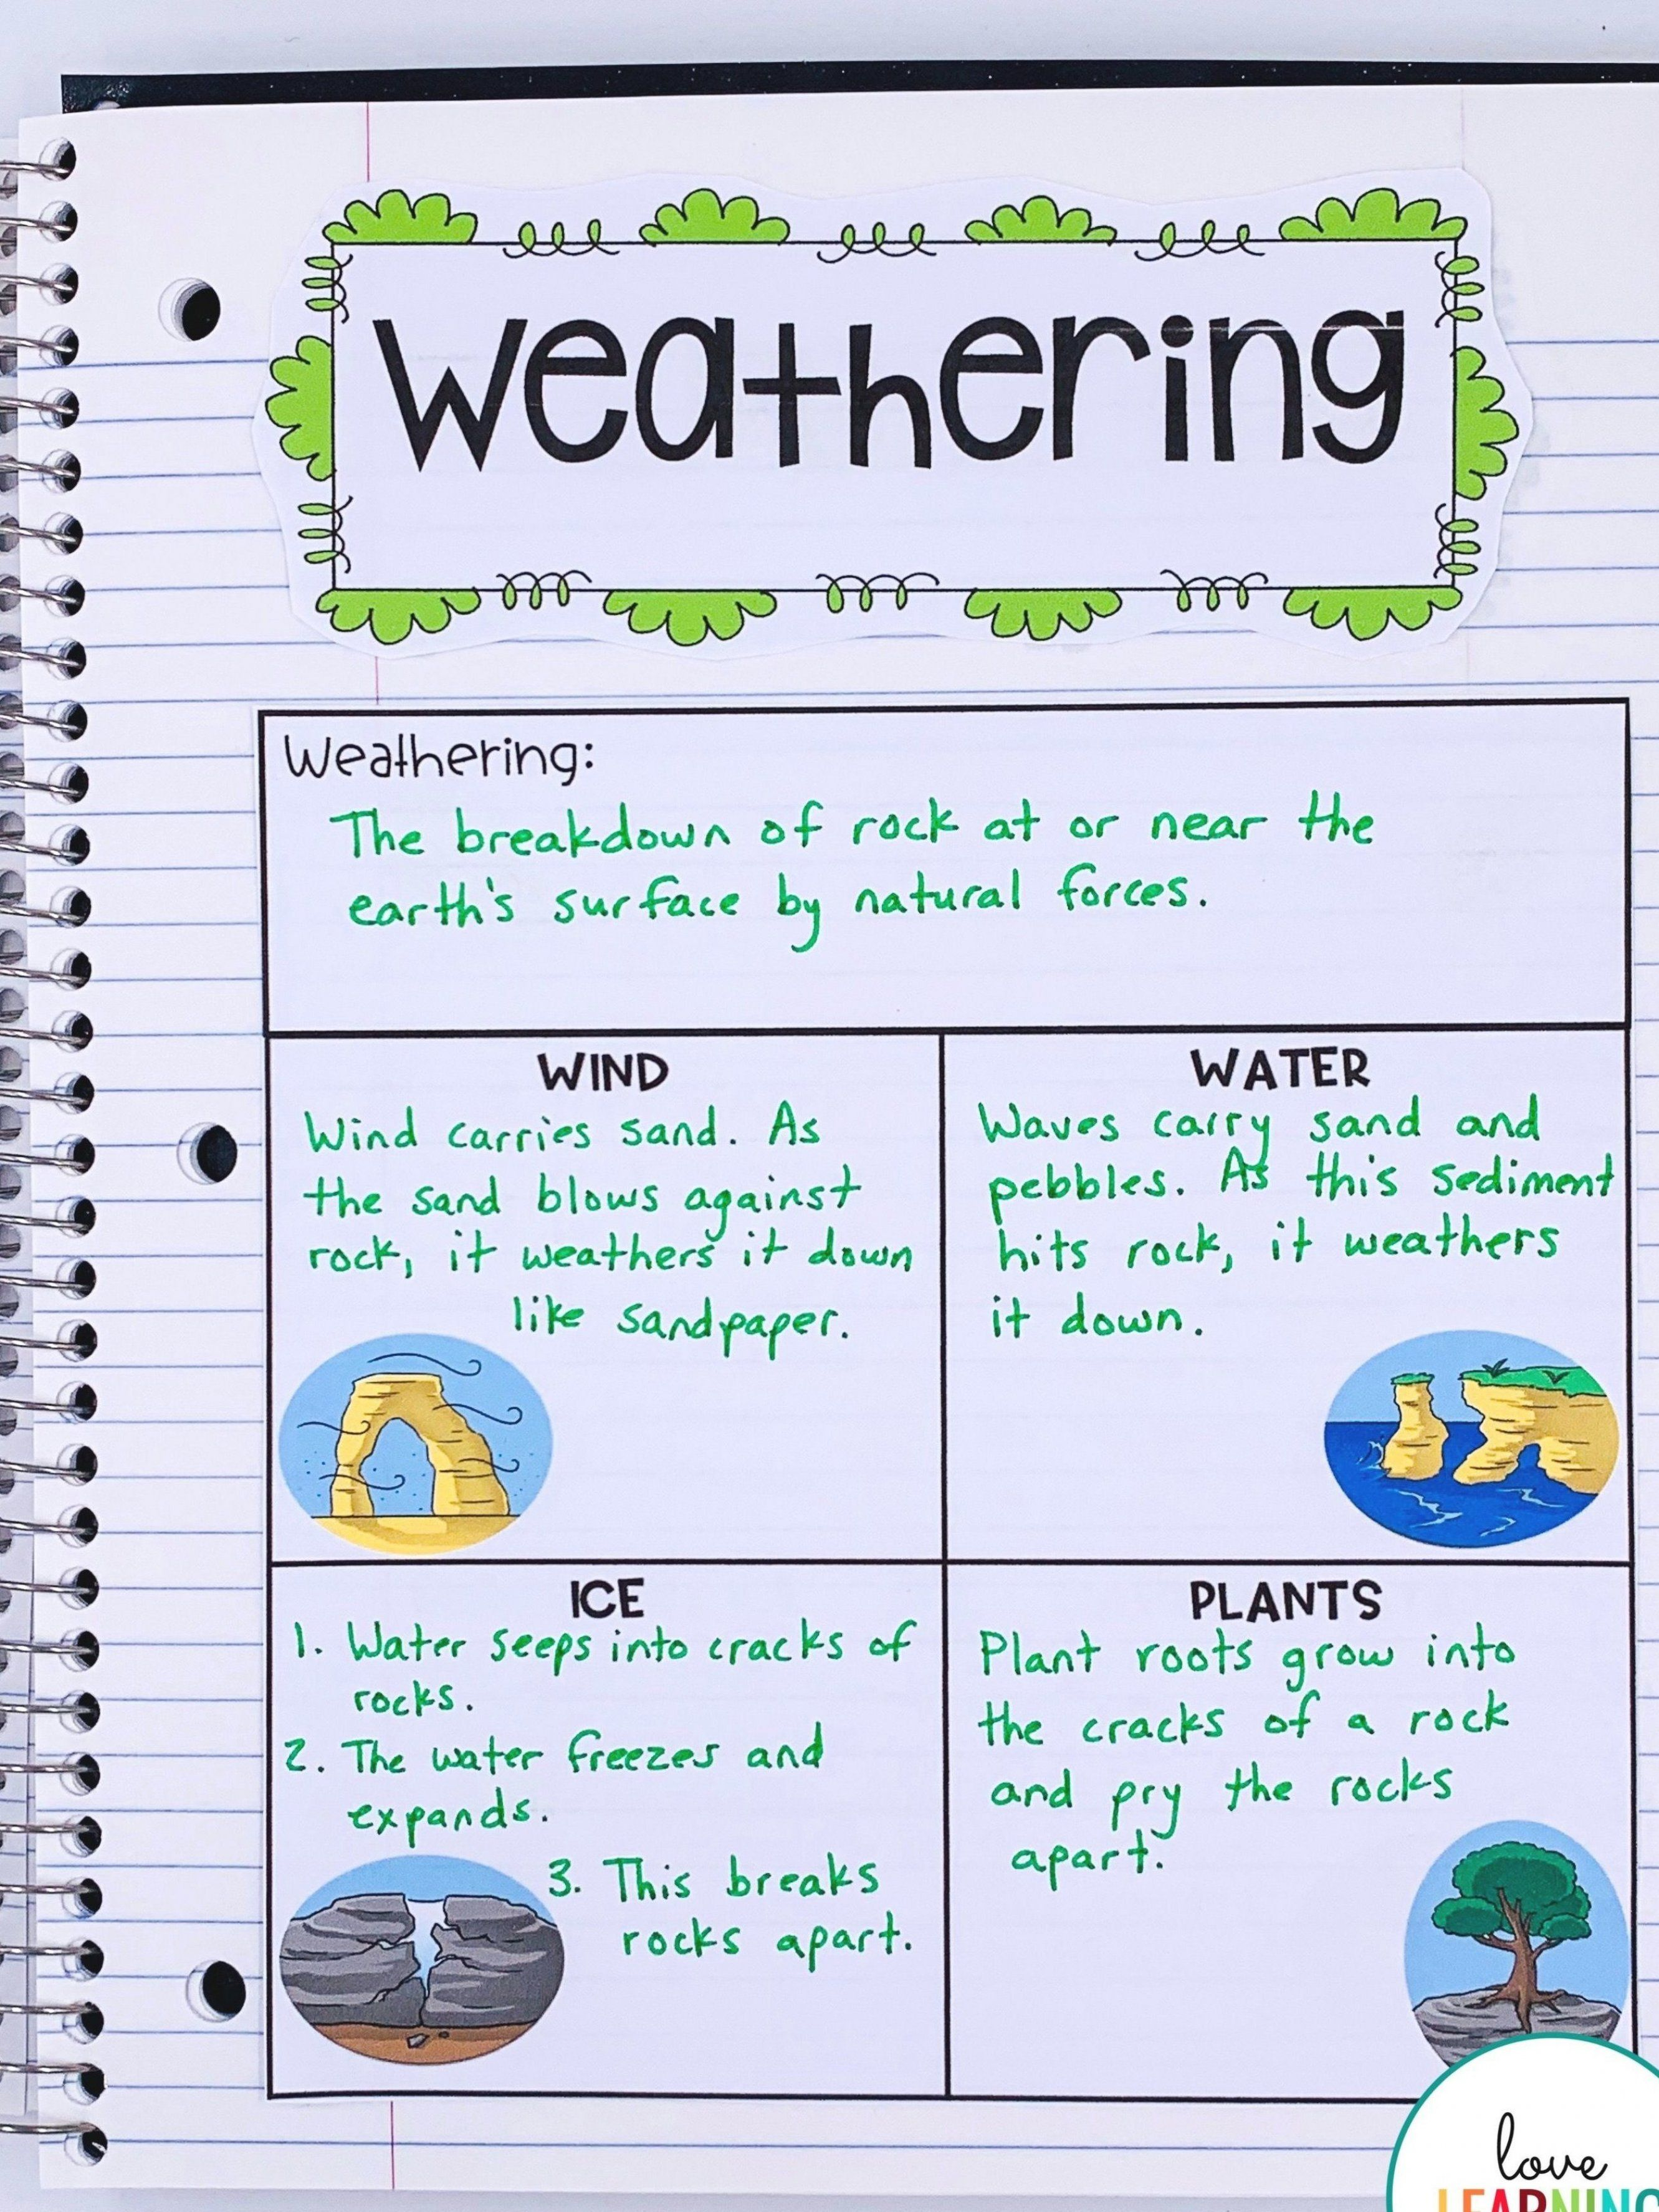 small resolution of Weathering Park Erosion Worksheet   Printable Worksheets and Activities for  Teachers